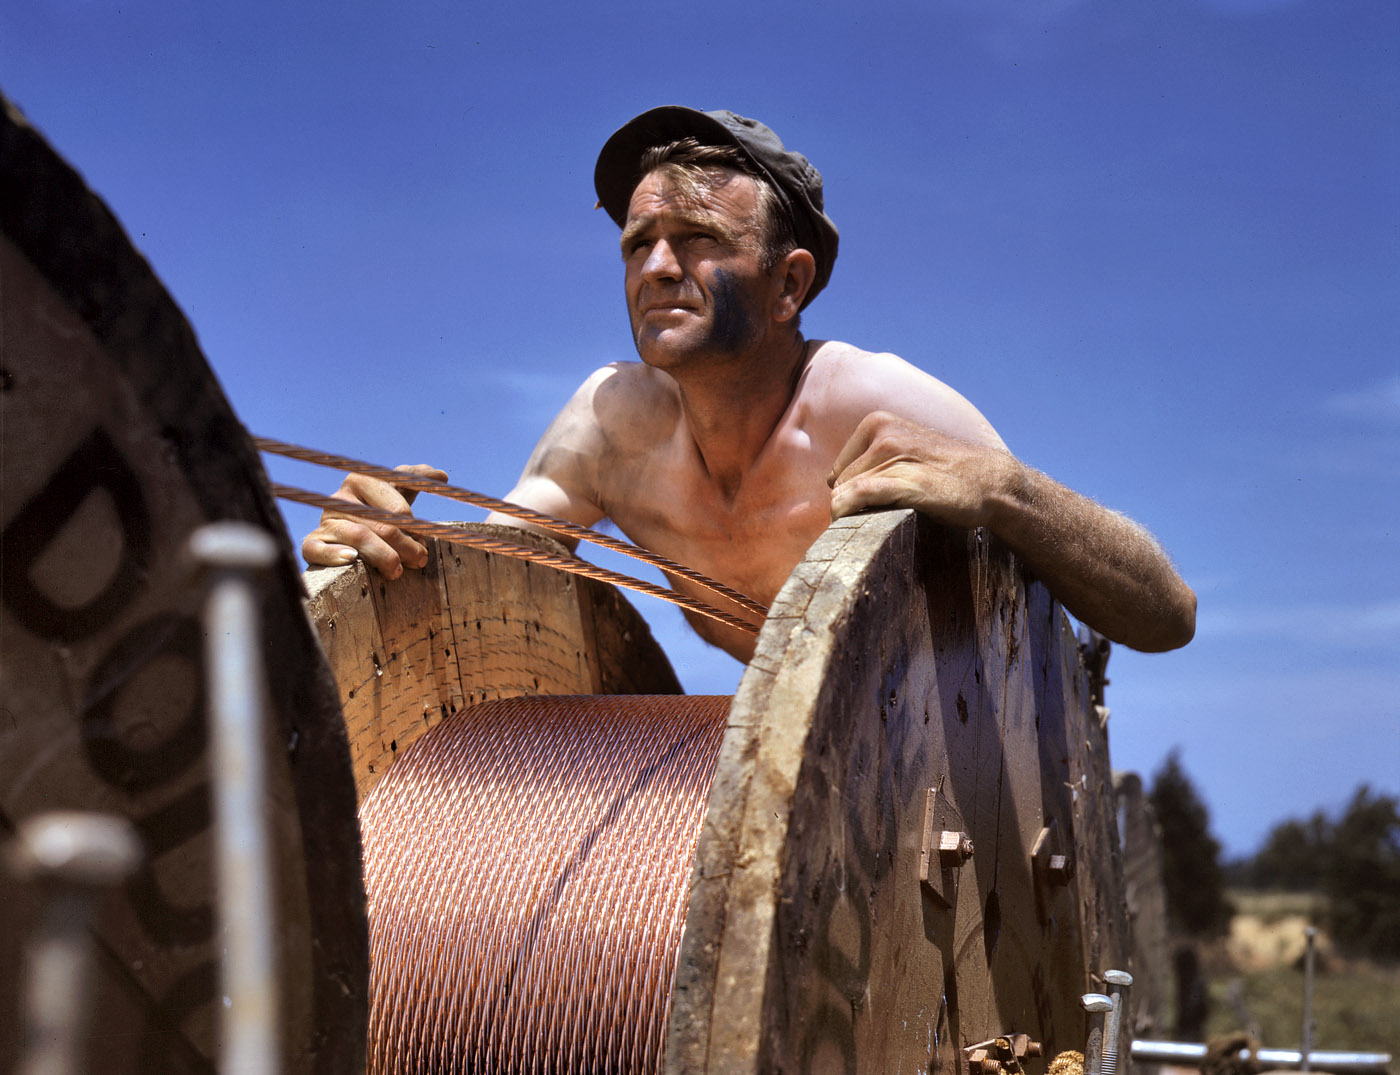 June 1942.  This husky member of a construction crew building a 33,000 volt power line into Fort Knox is performing an important war service. Thousands of soldiers are in training there, and the new line from a hydroelectric plant at Louisville is needed to supplement the existing power supply.